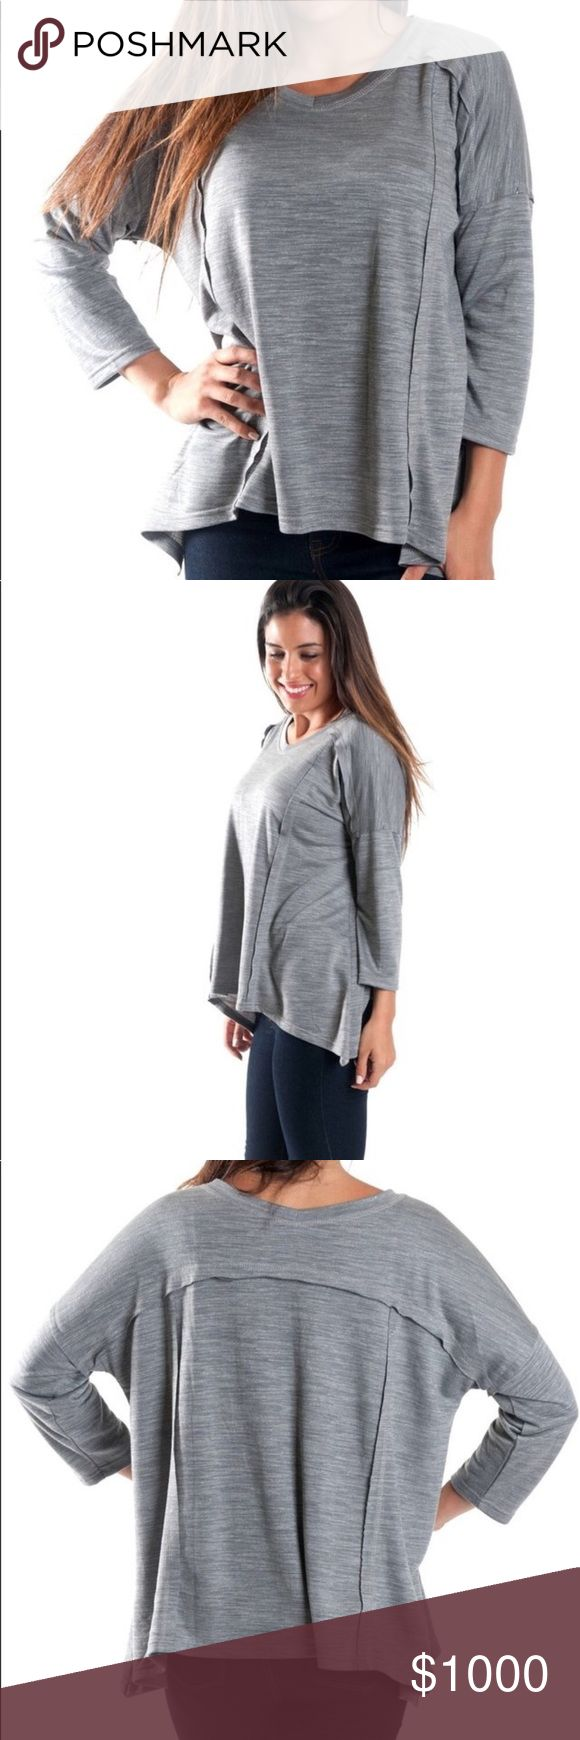 😍 COMING SOON! Grey Slouchy Open Hem Top + Paige slouchy top | grey + So comfy you'll want to wear it all day 😍 + Easily paired with leggings/jeans, boots and a scarf for a classic fall look + Deep v-neck and 3/4 sleeves + 81% polyester & 19% viscose + Oversized style + Will be getting 2S, 2M, 2L! Like this post to get a price drop ⬇️ notification when they come in!  + Smoke free and pet free home 🏡 + NO OFFERS AND NO TRADES 🚫  ✨ If you would like any additional photos or if you have any…